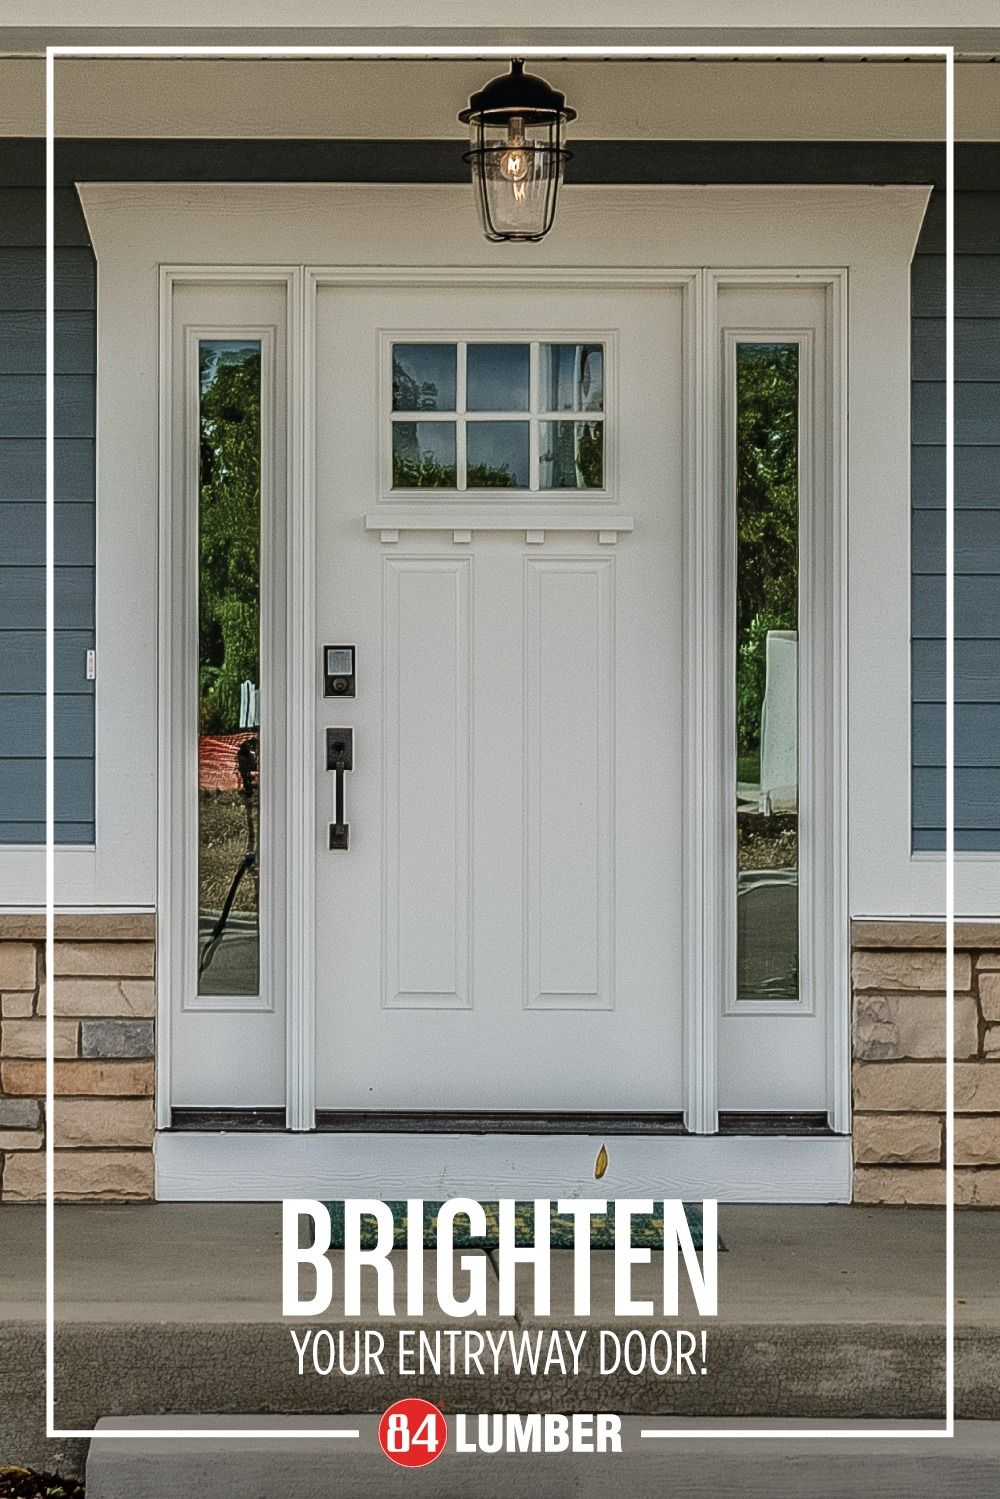 Brighten your entry with 84 Lumber